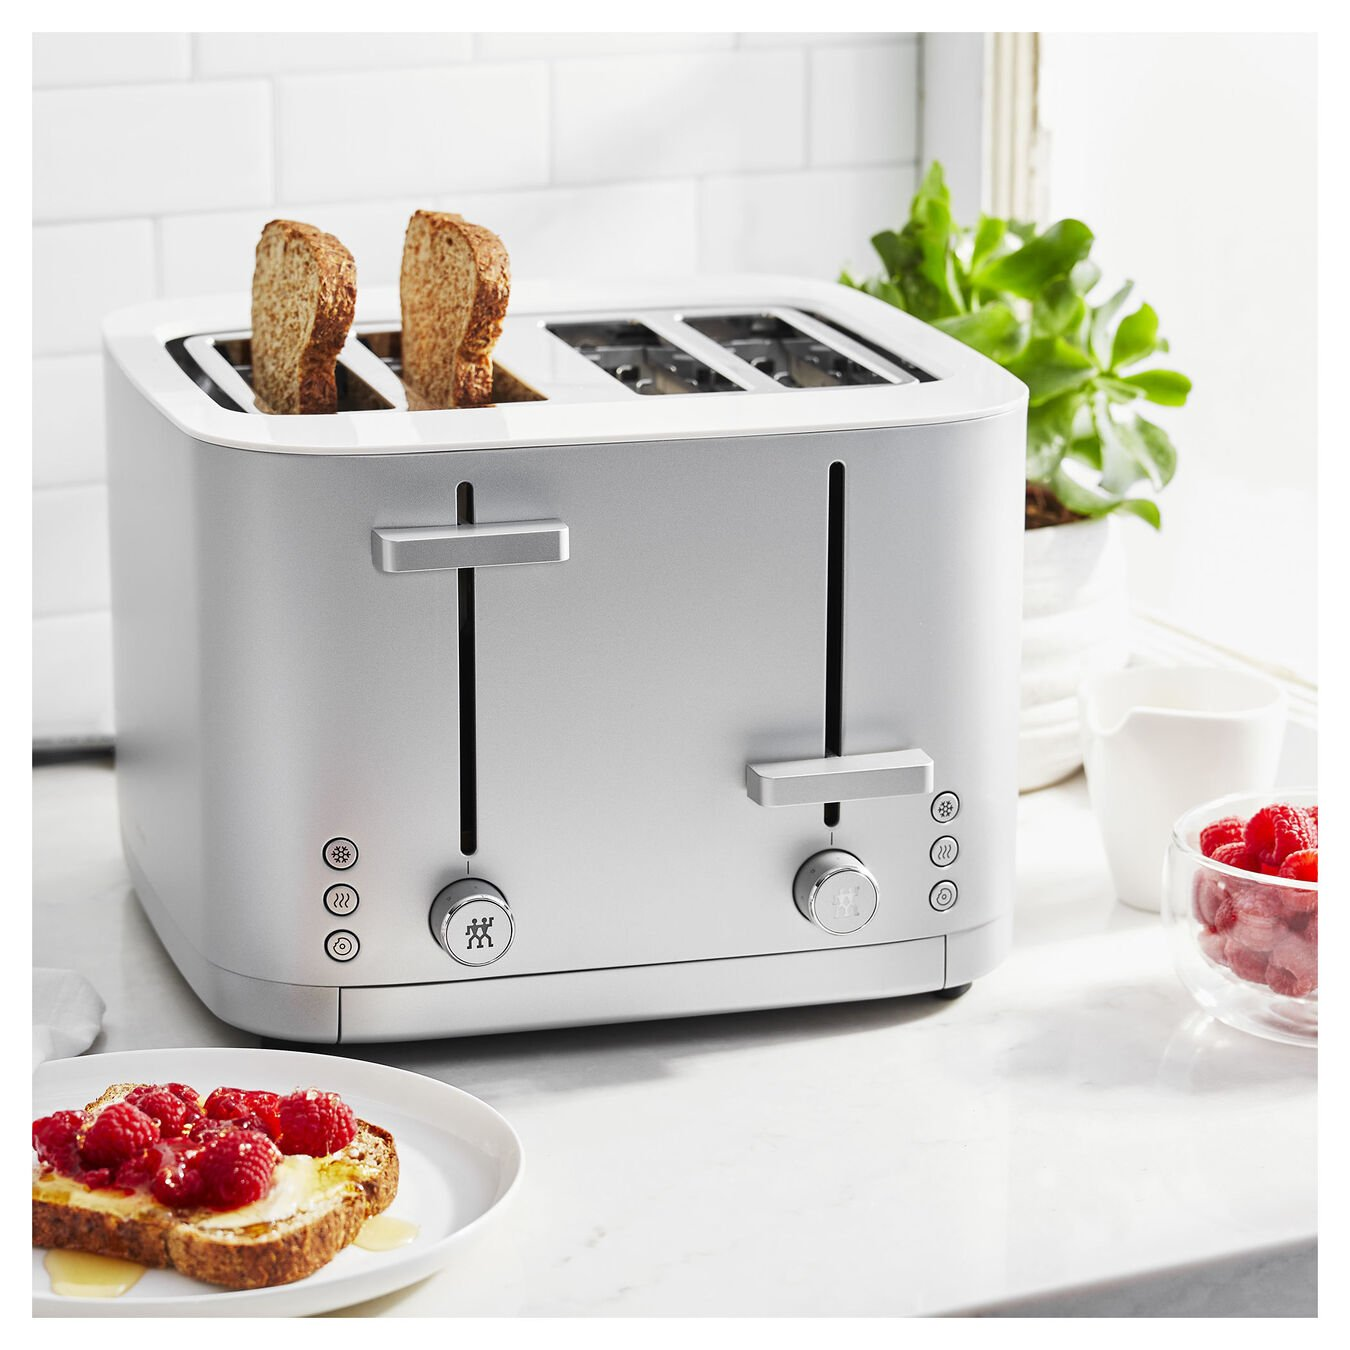 4-slot toaster,,large 5